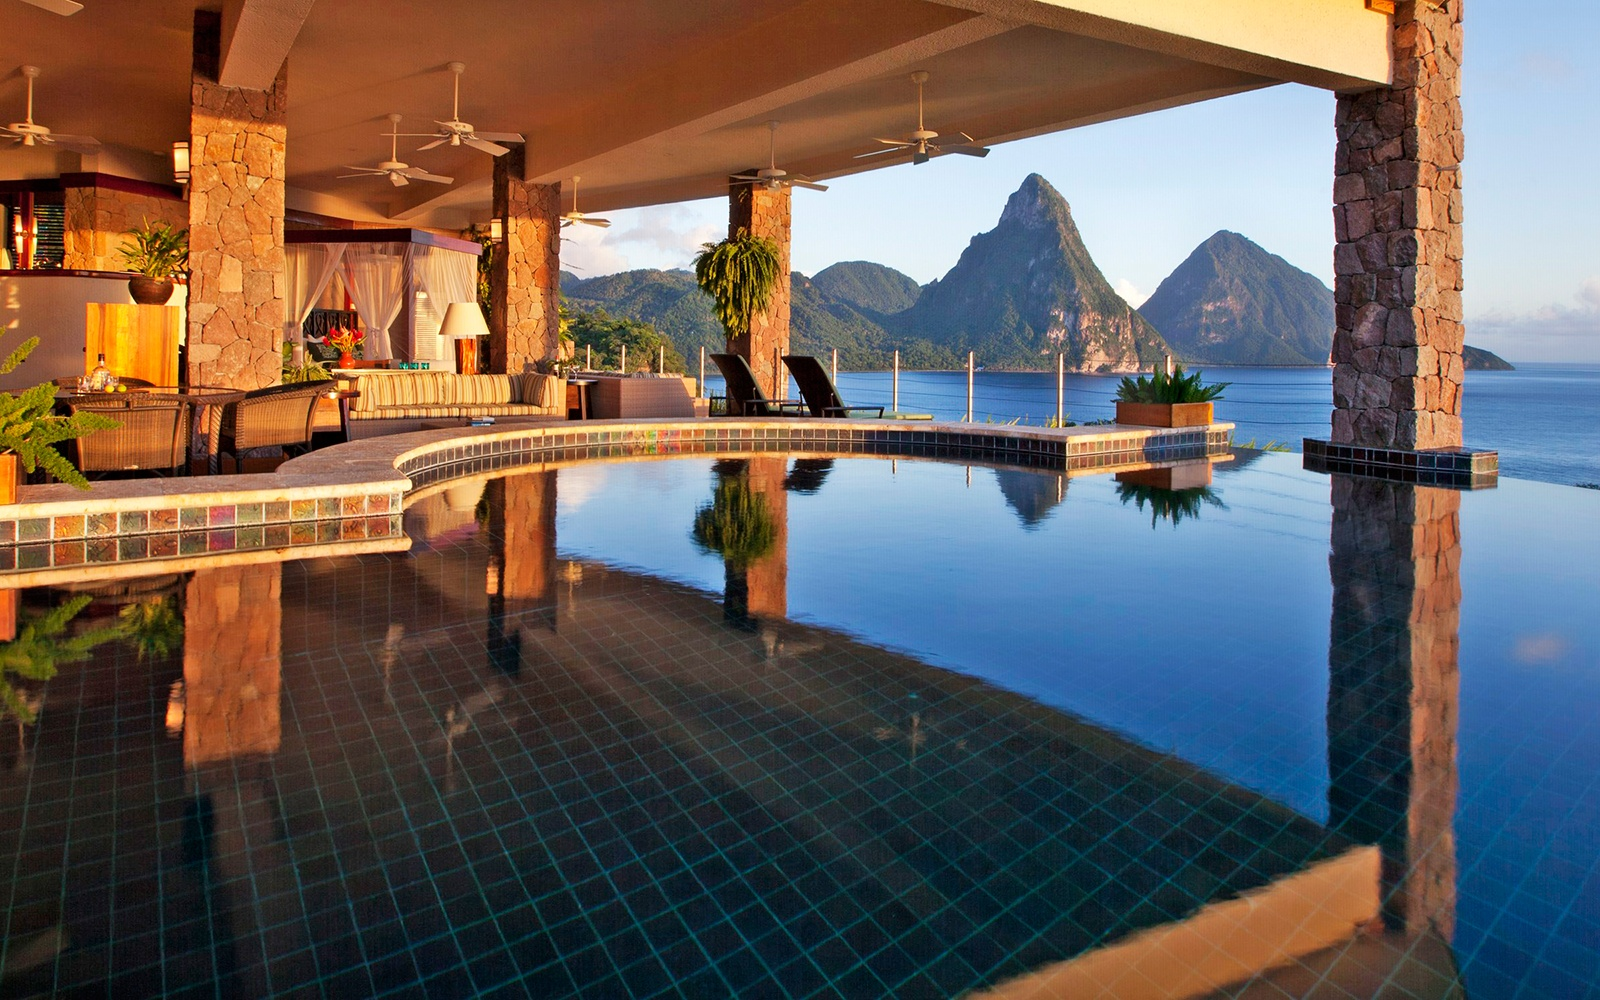 Infinity Pool At Jade Mountain Resort, St. Lucia Good Looking